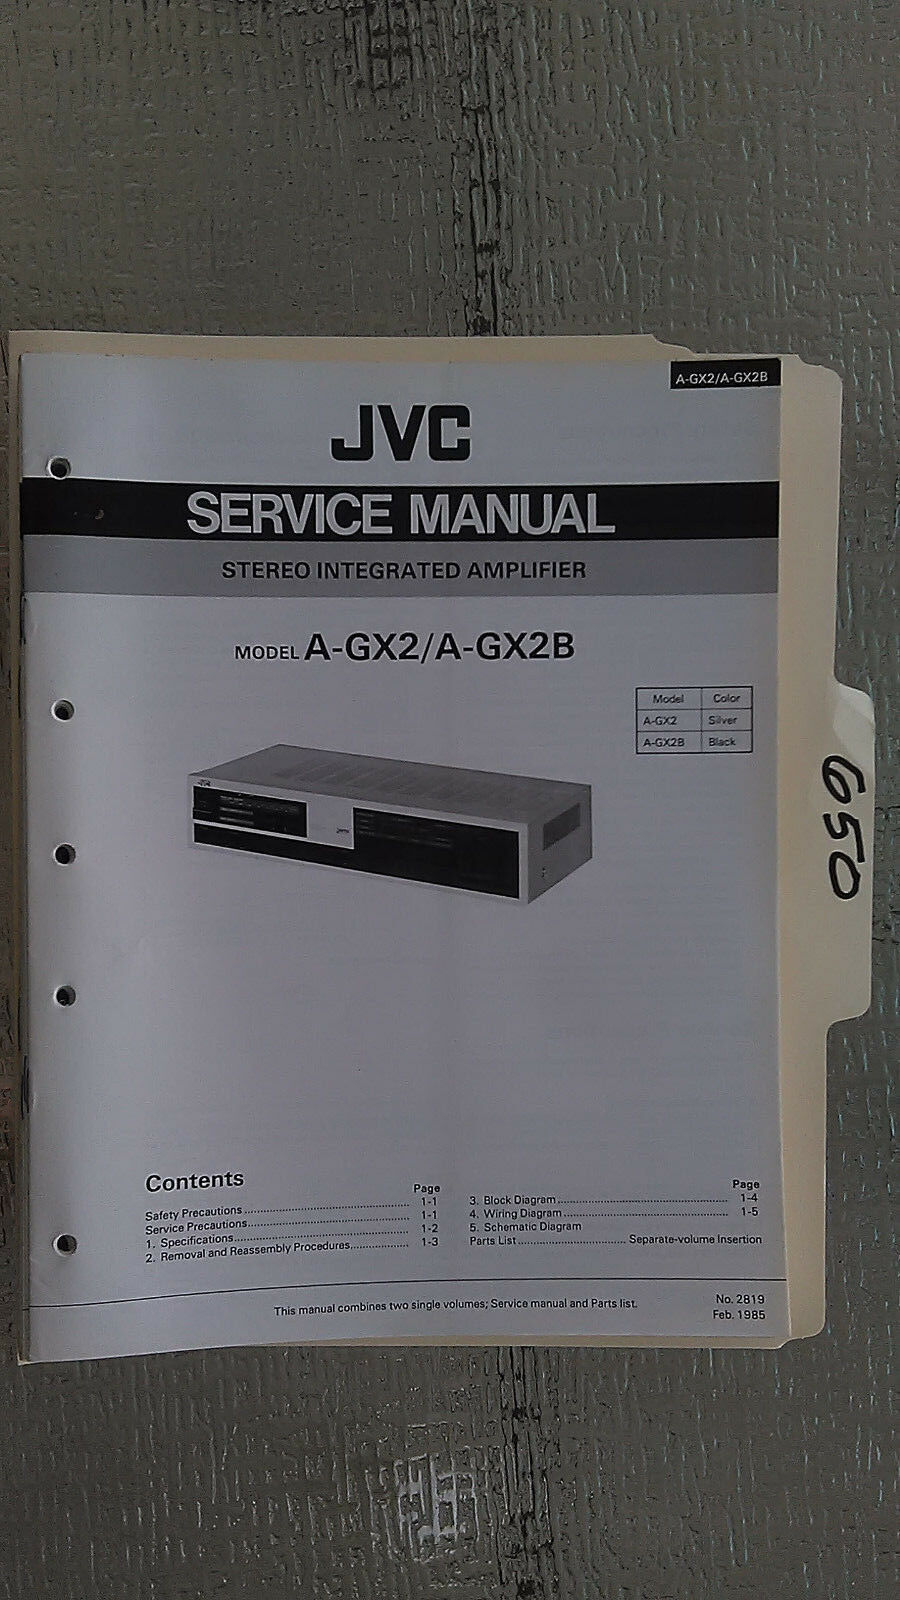 Jvc A Gx2 B Service Manual Original Repair Book Stereo Amp Amplifier Icom Ic A200 Wiring Diagram 1 Of 1only Available